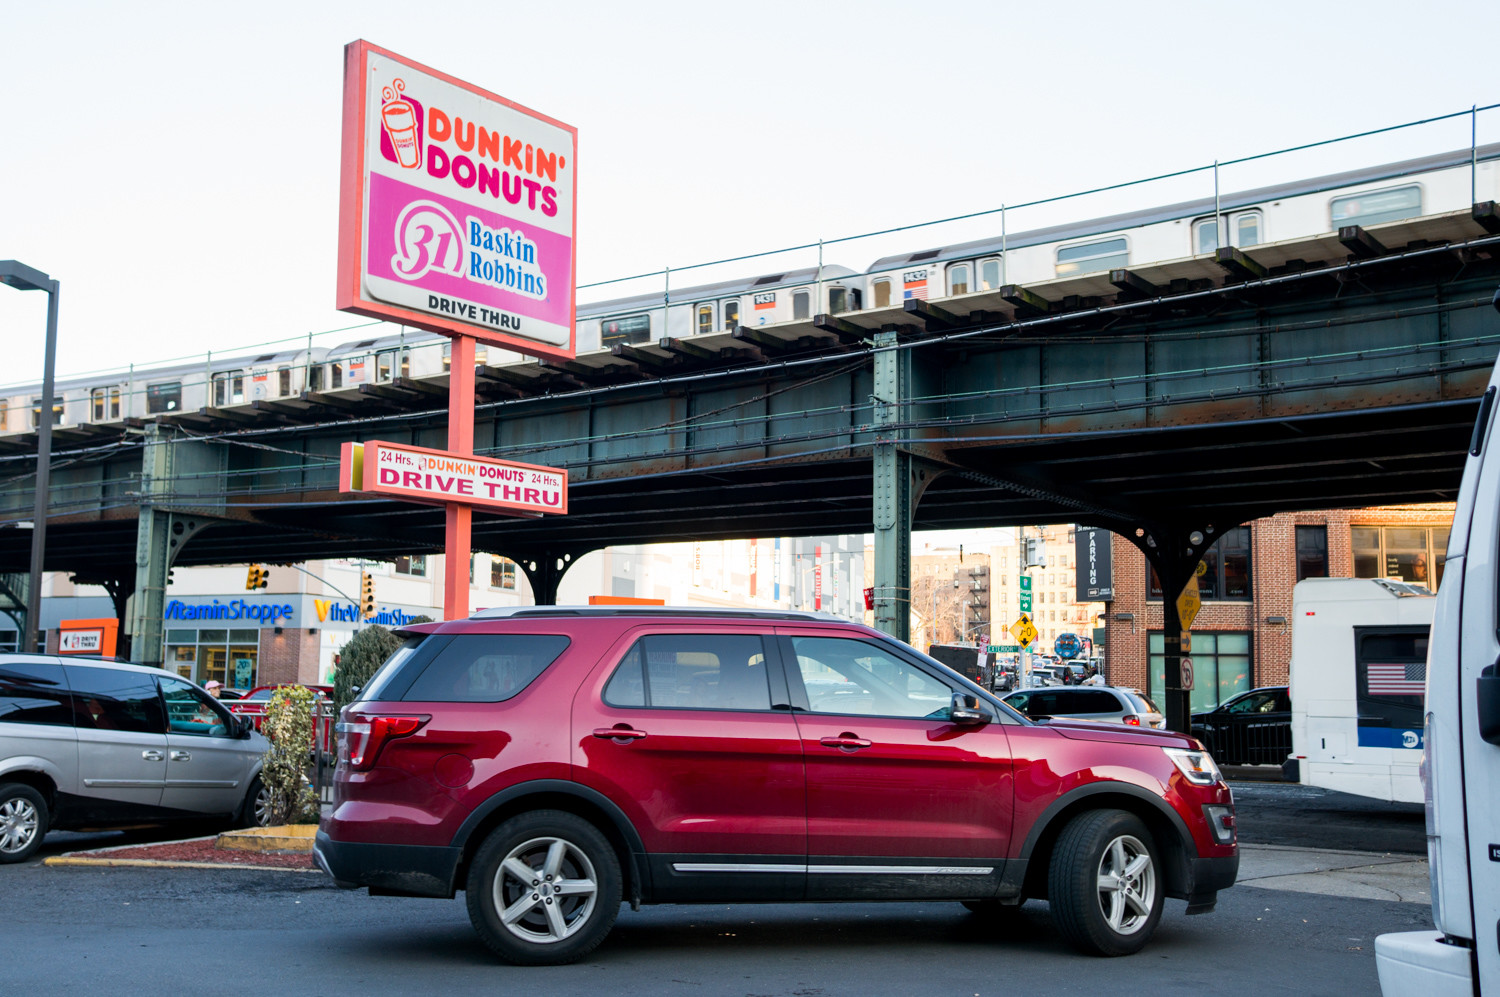 A driver leaves the Dunkin' Donuts parking lot at West 230th Street and Broadway. Parking there and going to other businesses nearby — or to the post office, just steps away — risks getting towed by IPK Automotive Inc. Several people have accused the company's drivers of using intimidating and what some say are illegal tactics like demanding cash payments.